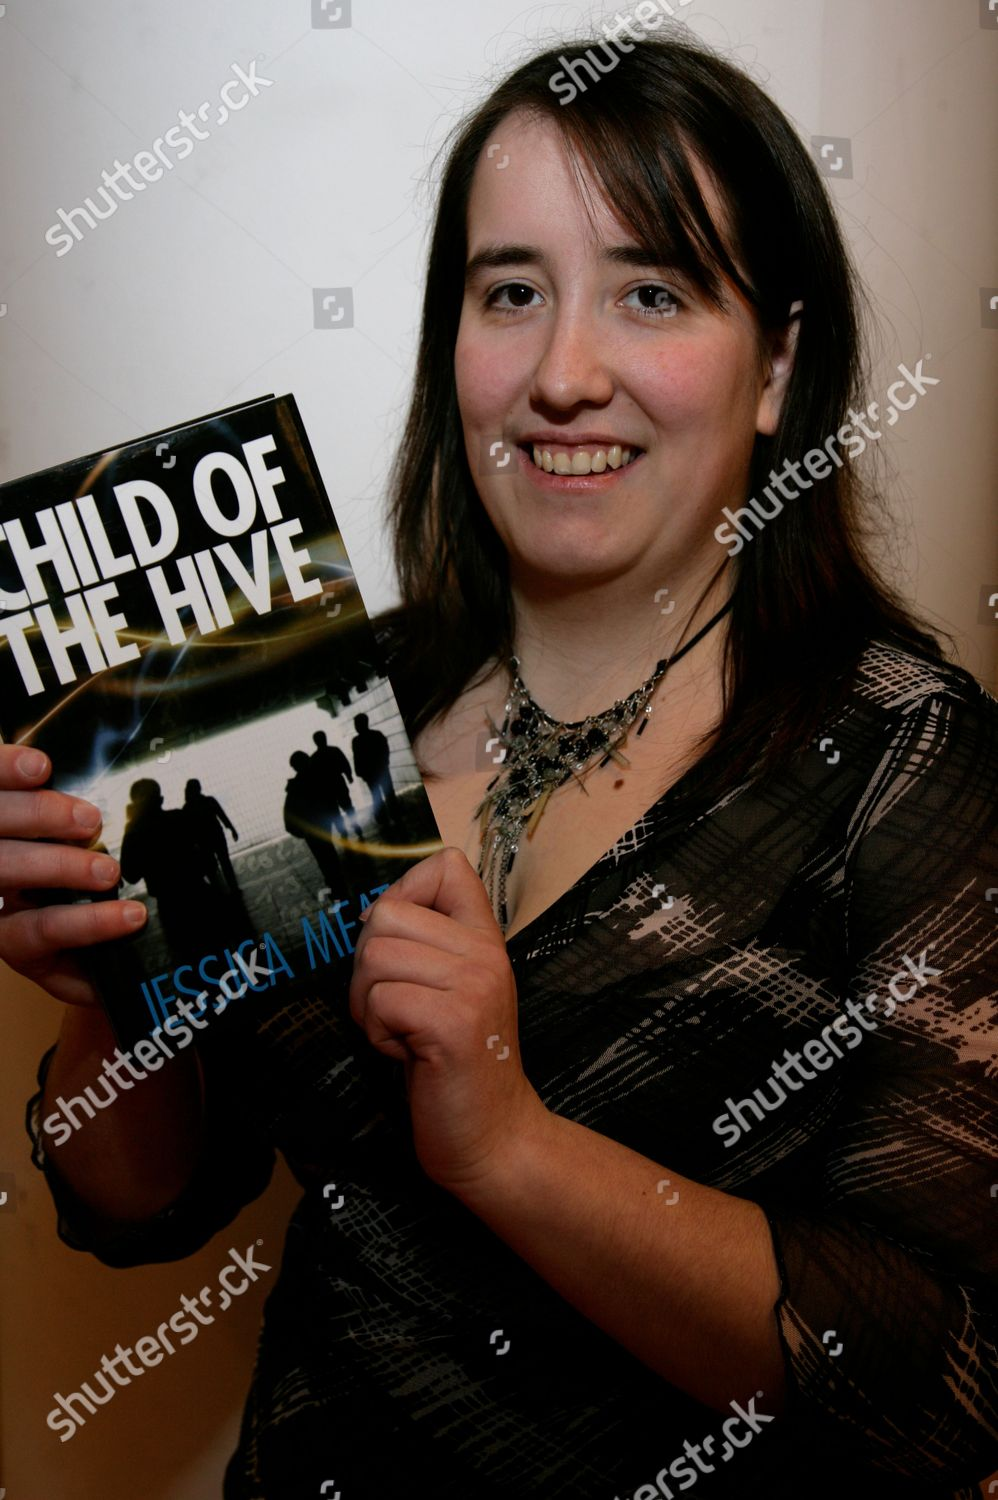 Stock photo of 'Child Of The Hive' Jessica Meats Book Promotion, Waterstones, Reading, Britain - 13 Feb 2010